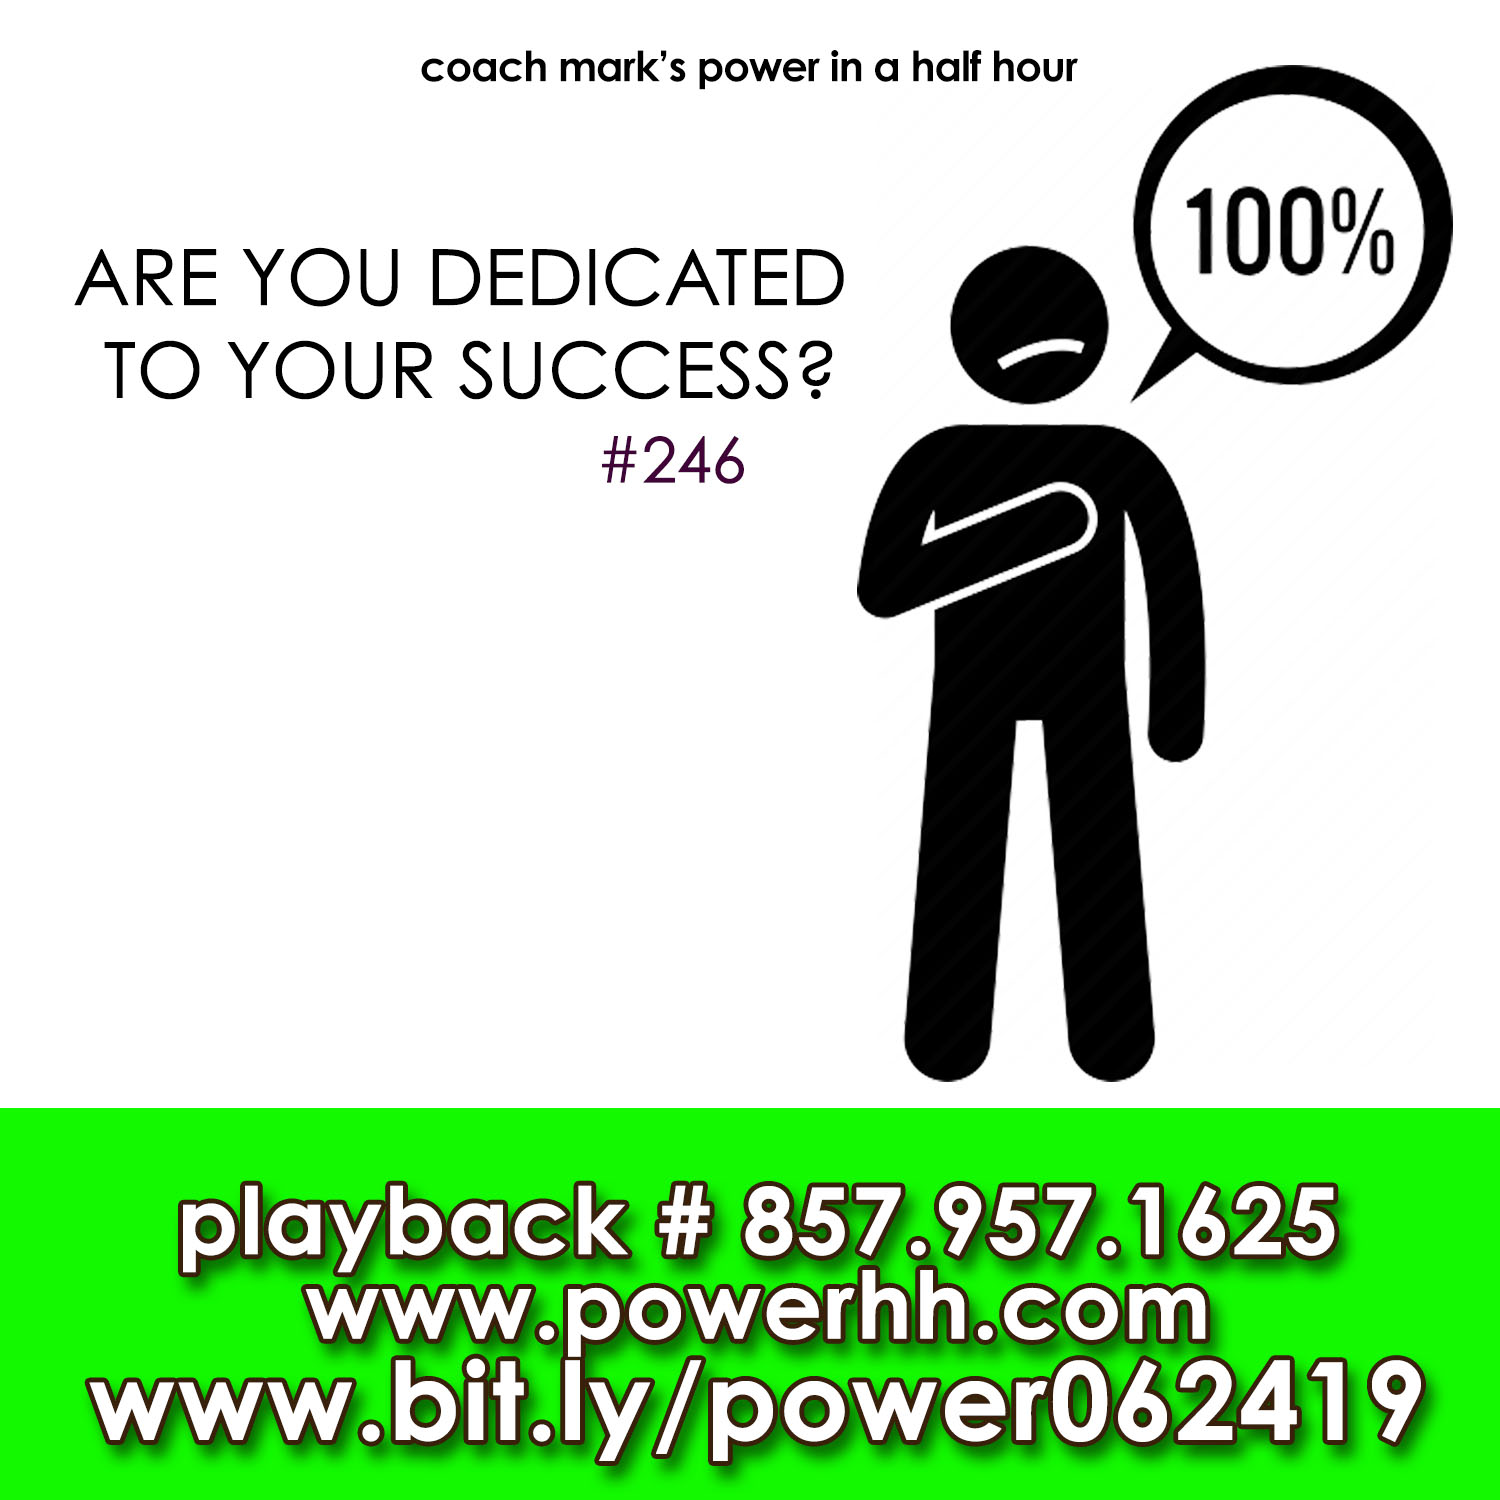 power replay 062419